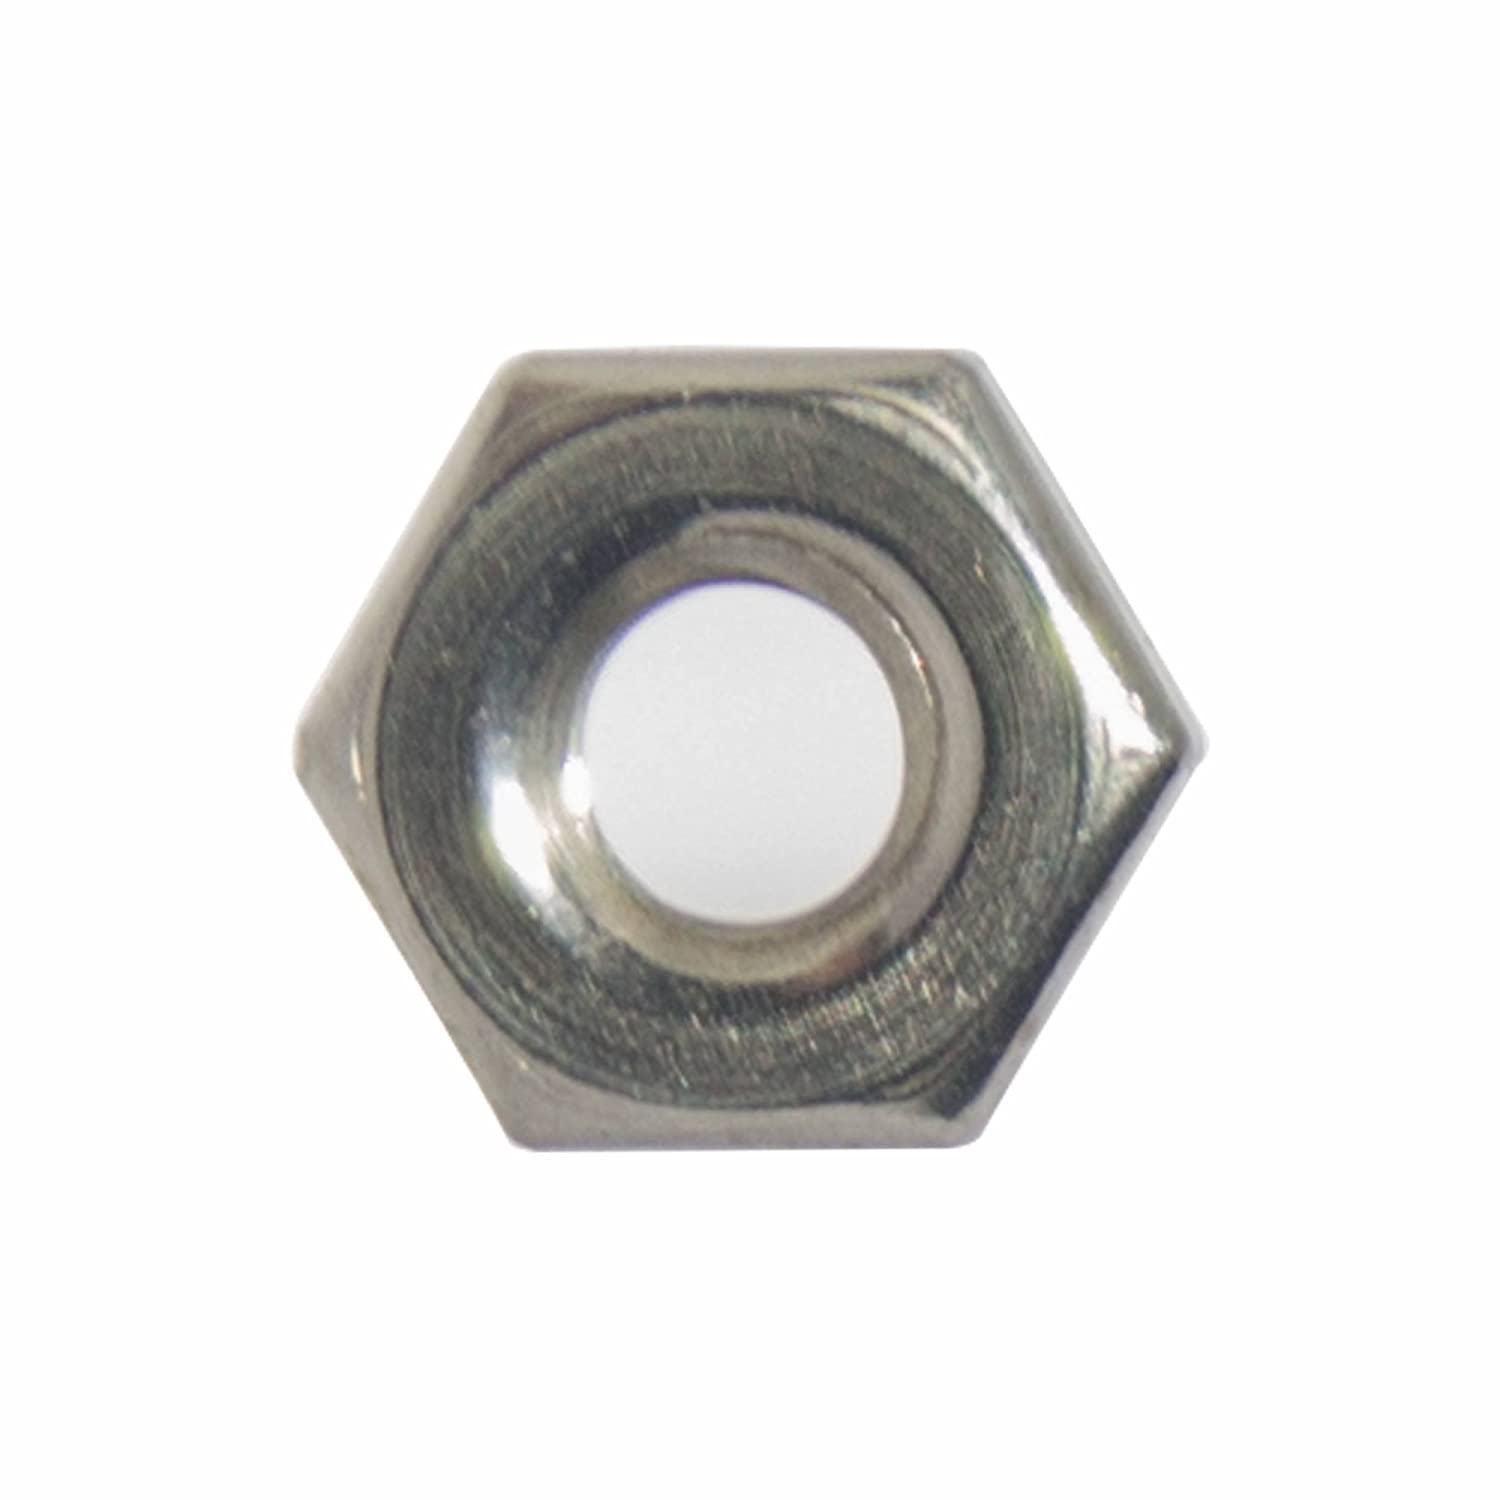 6-32 Machine Screw Hex Nuts Bright Finish Quantity 100 By Fastenere Stainless Steel 18-8